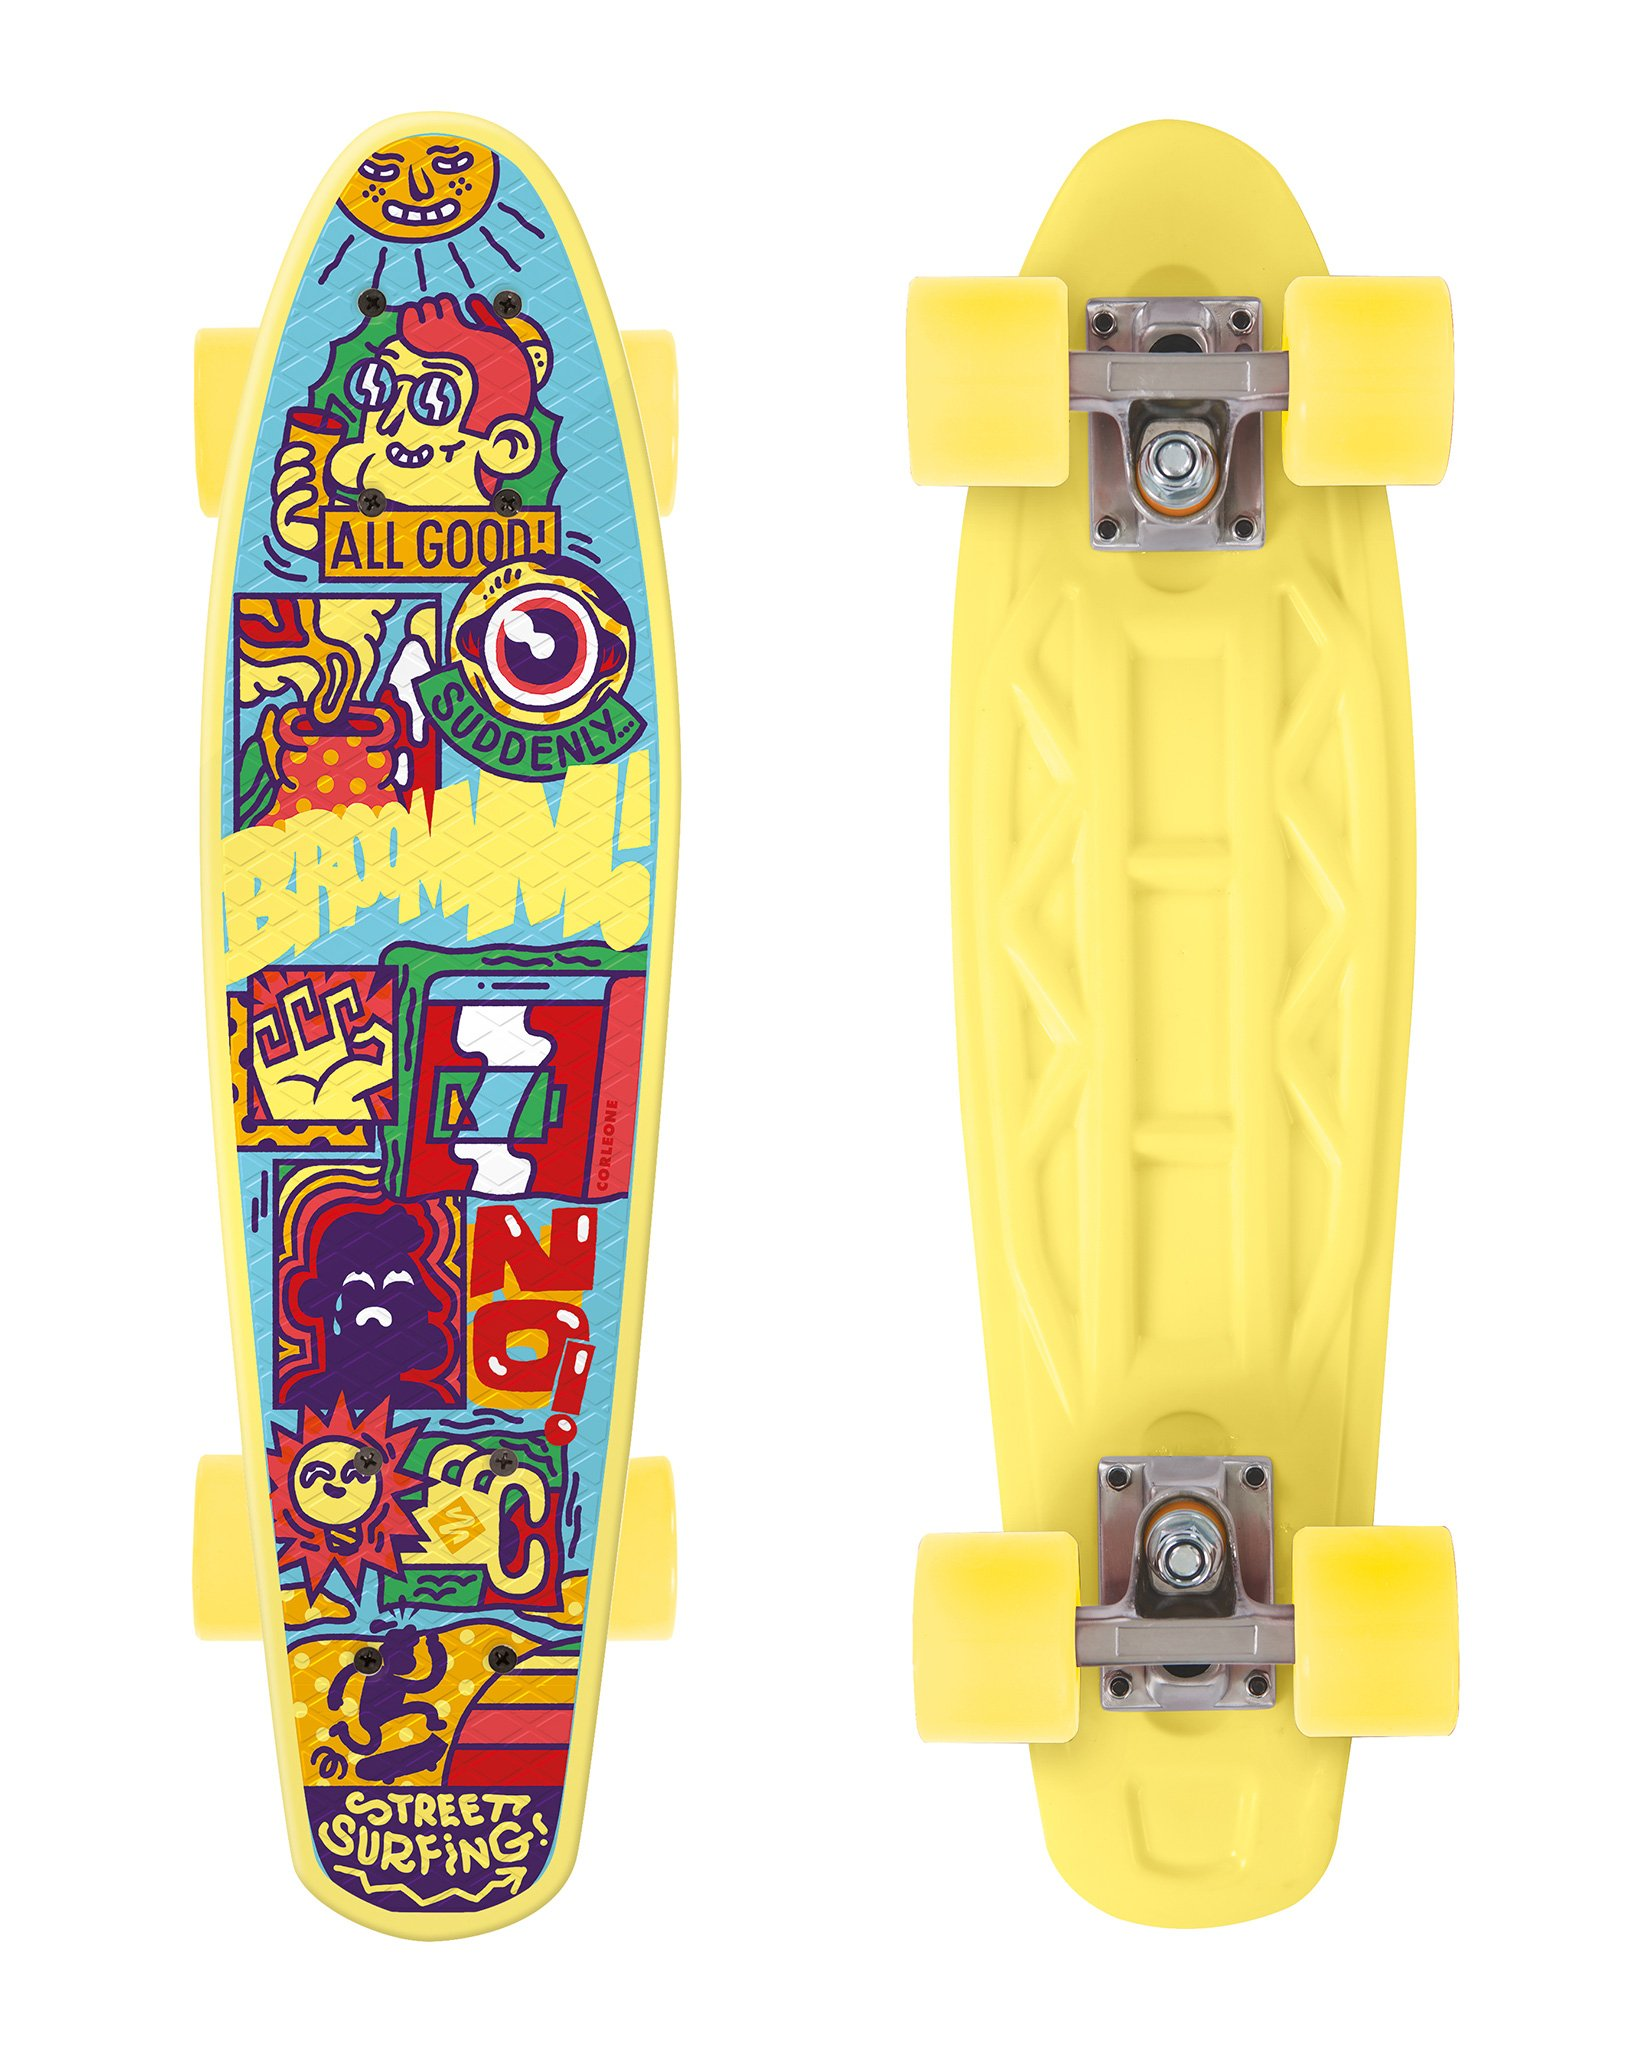 Penny board - Street Surfing Corleone Board Cruiser - All Good